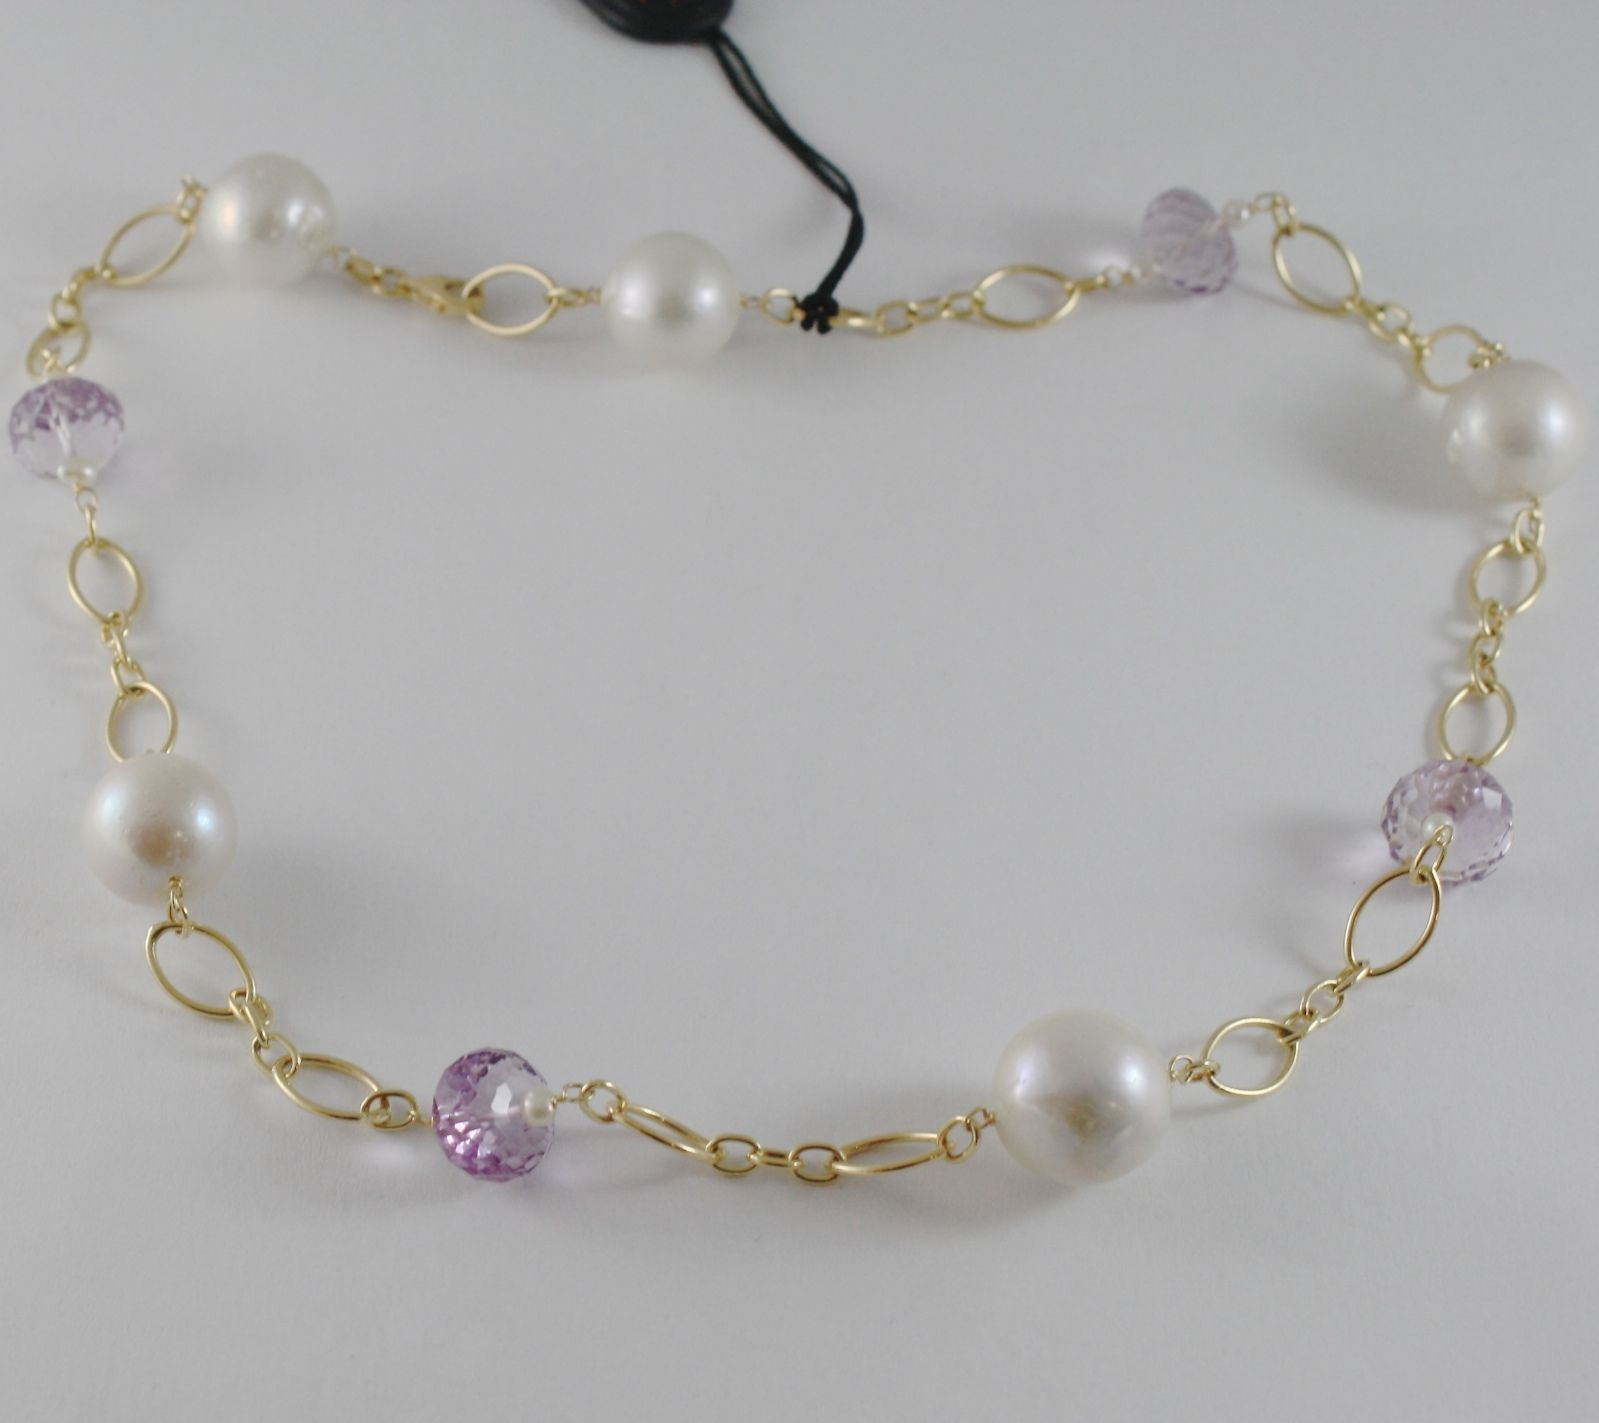 18K YELLOW GOLD NECKLACE BIG WHITE PEARLS & CUSHION AMETHYST CHAIN MADE IN ITALY